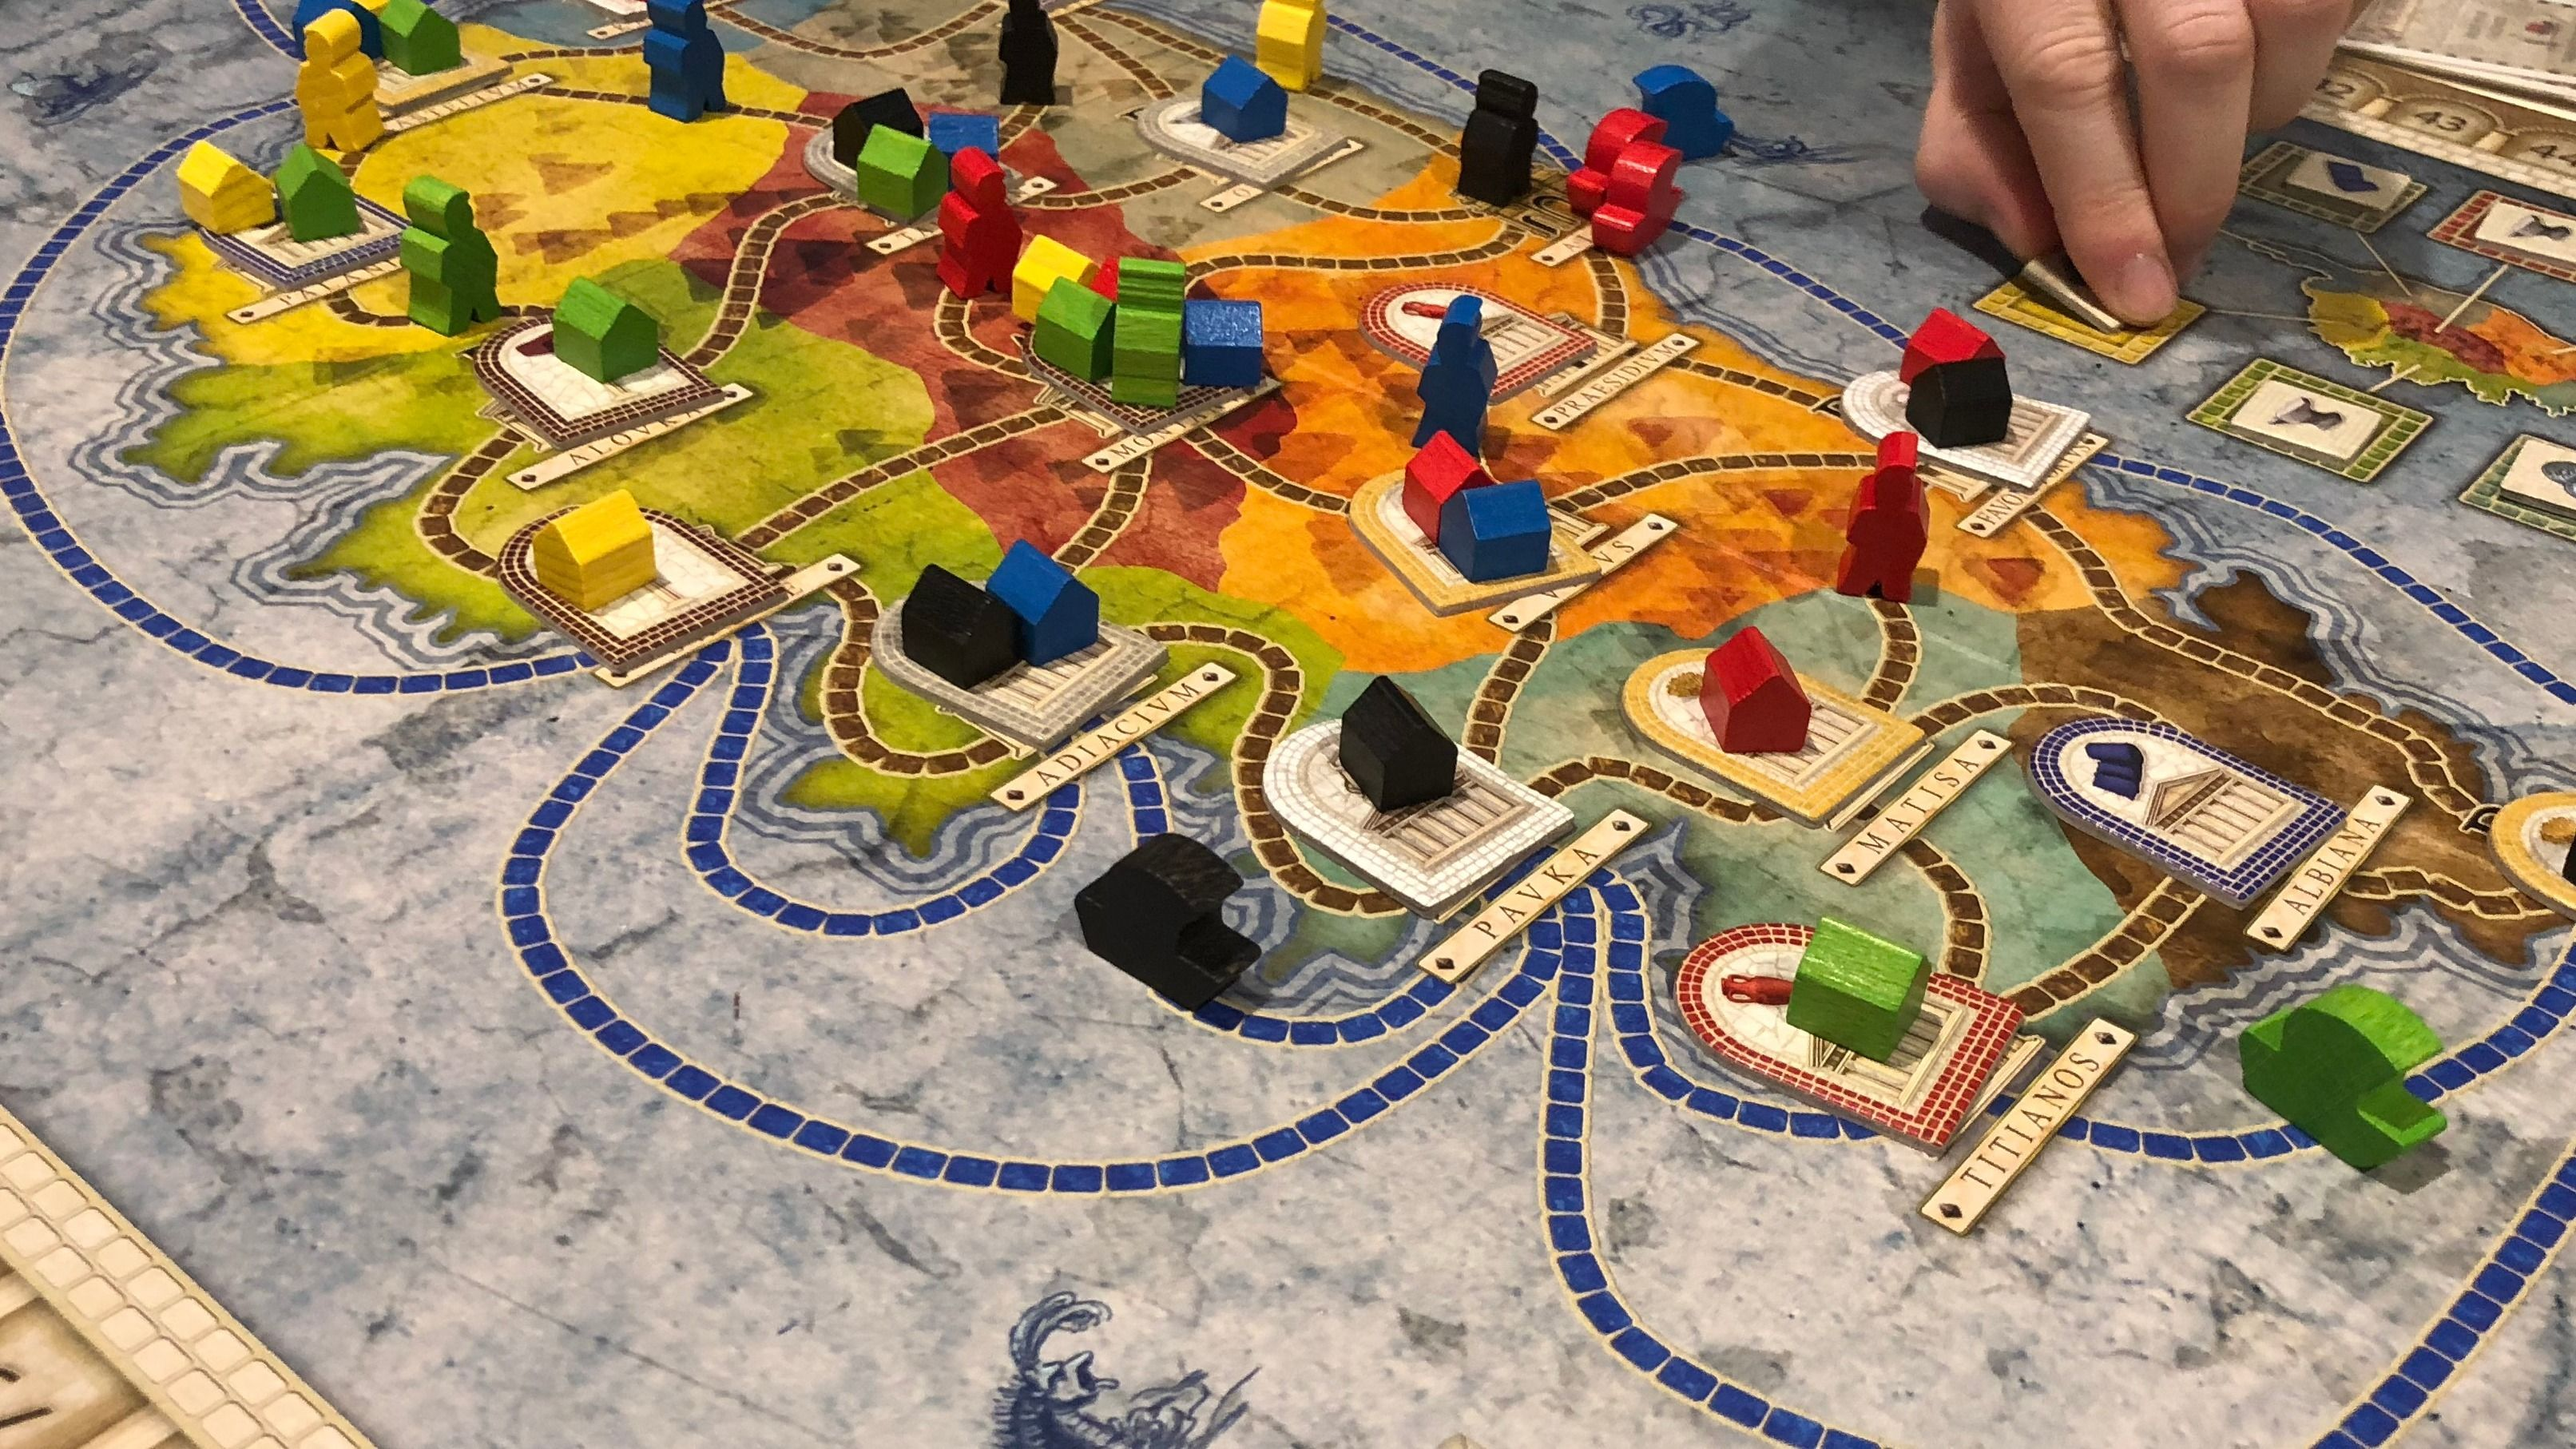 Sydney Tabletop Games - Sydney's Premium Board Game Group